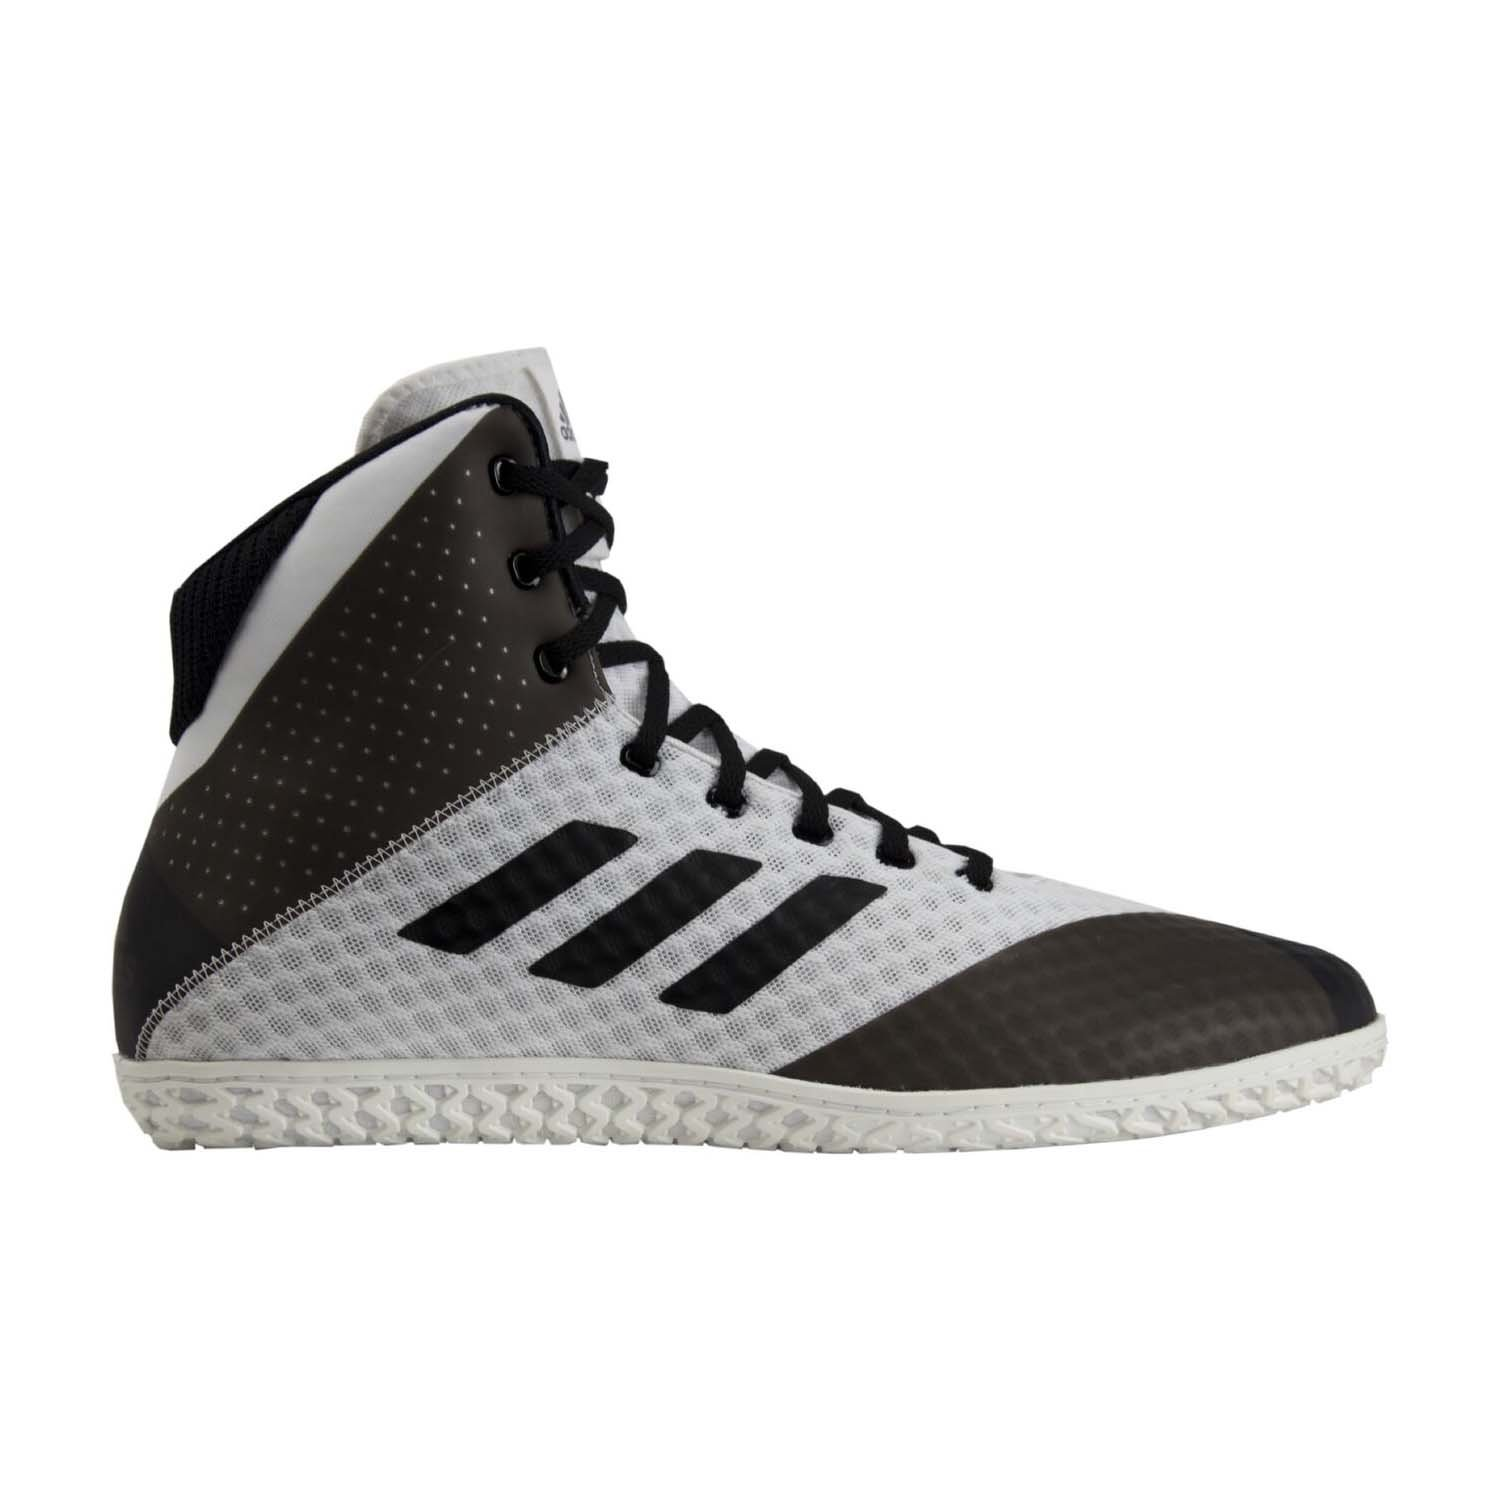 adidas Mat Wizard 4 Men's Wrestling Shoes, White/Black, Size 9 by adidas